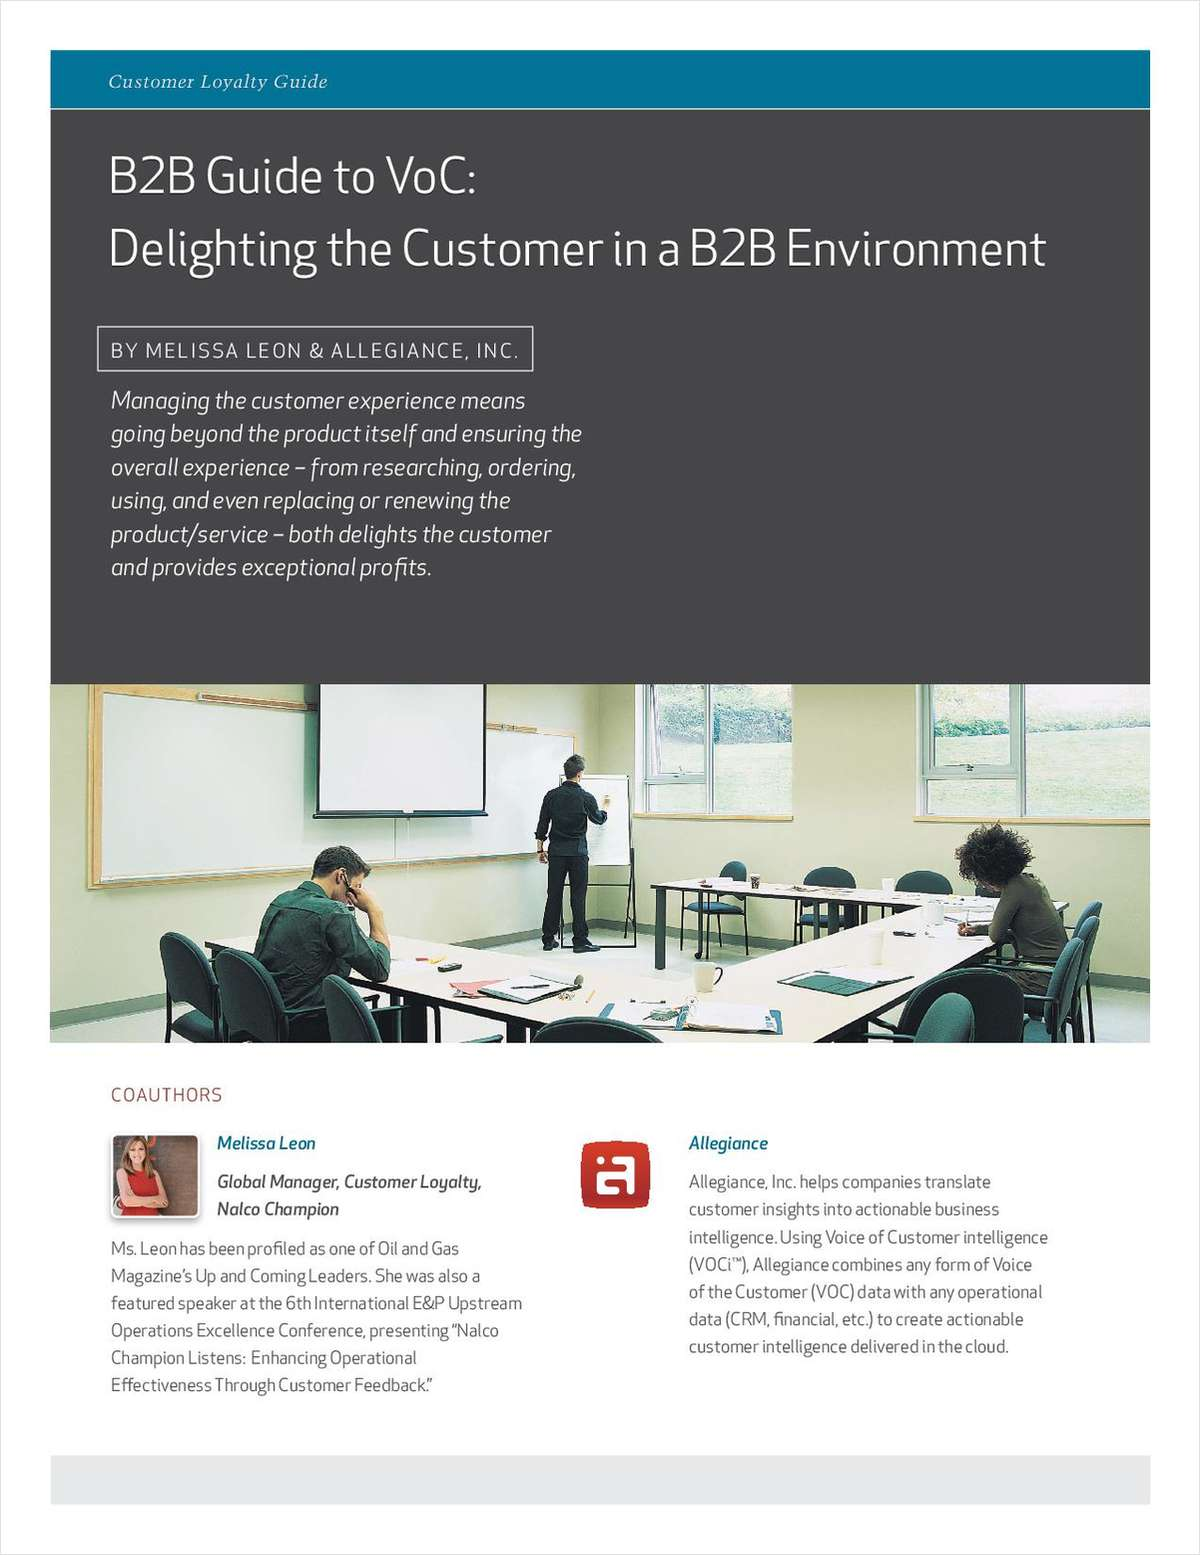 B2B Guide to VoC: Delighting the Customer in a B2B Environment